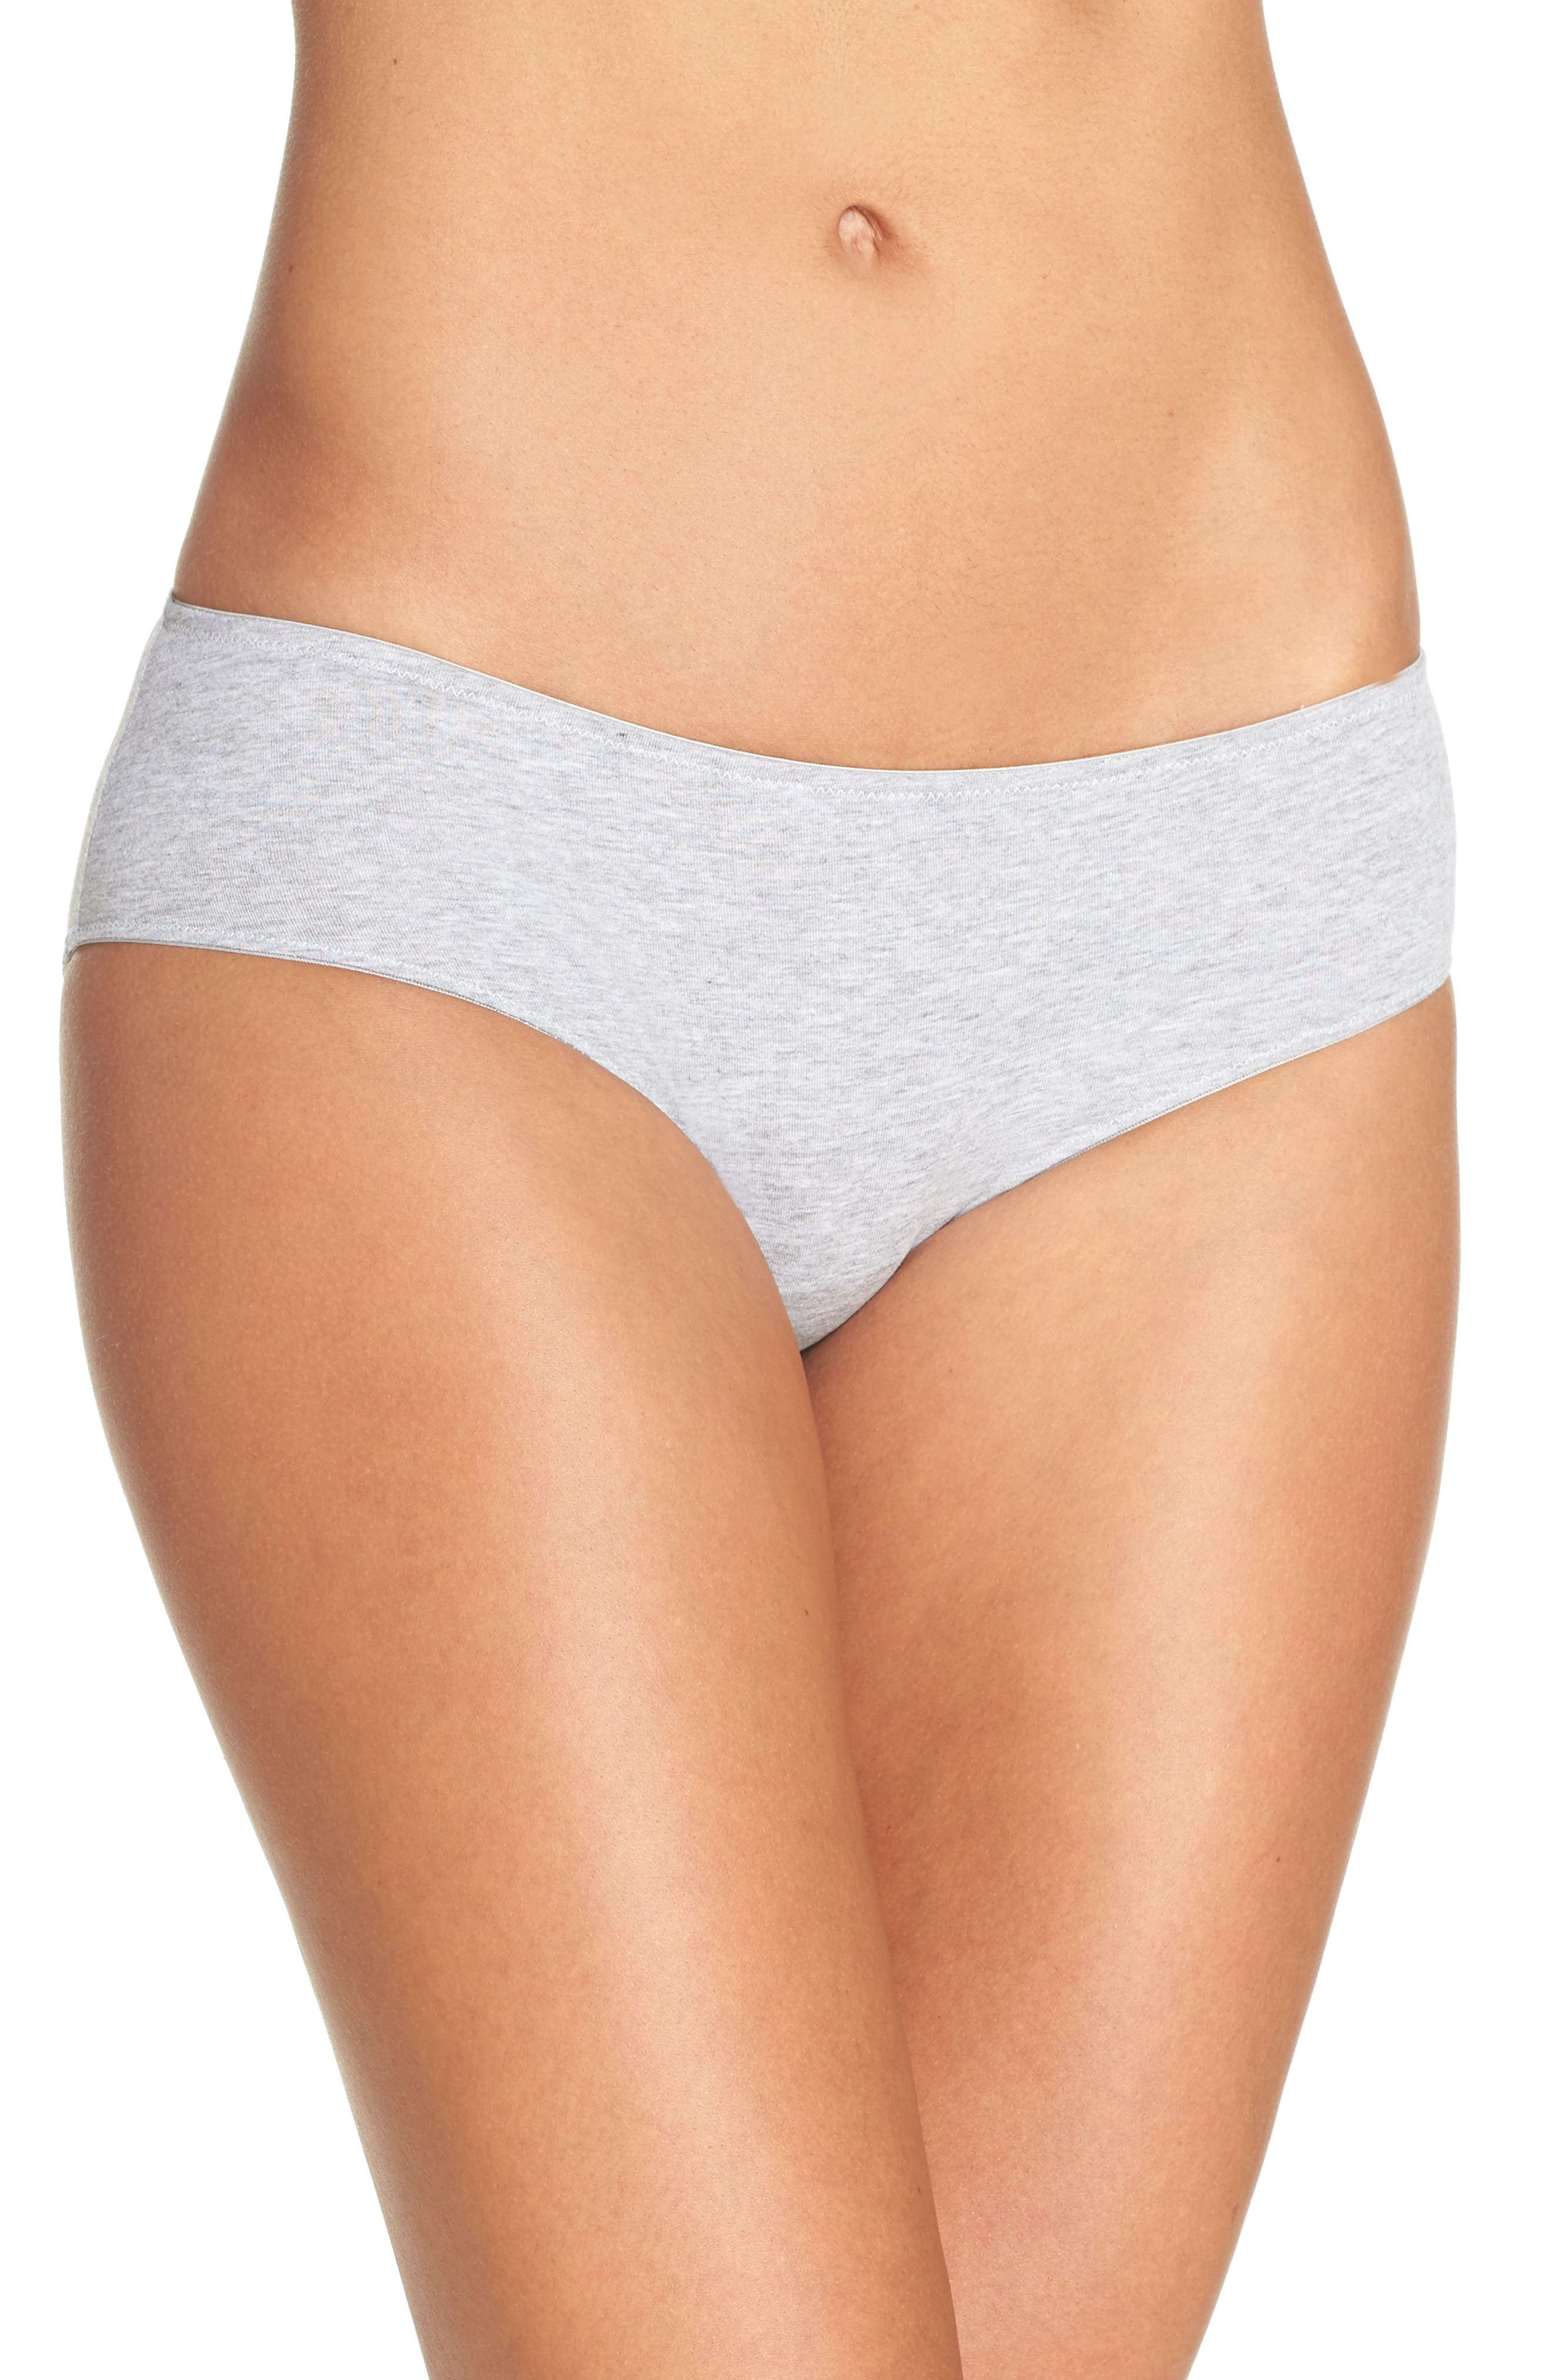 Hipster Undies,                             Main thumbnail 1, color,                             Heathered Pelican